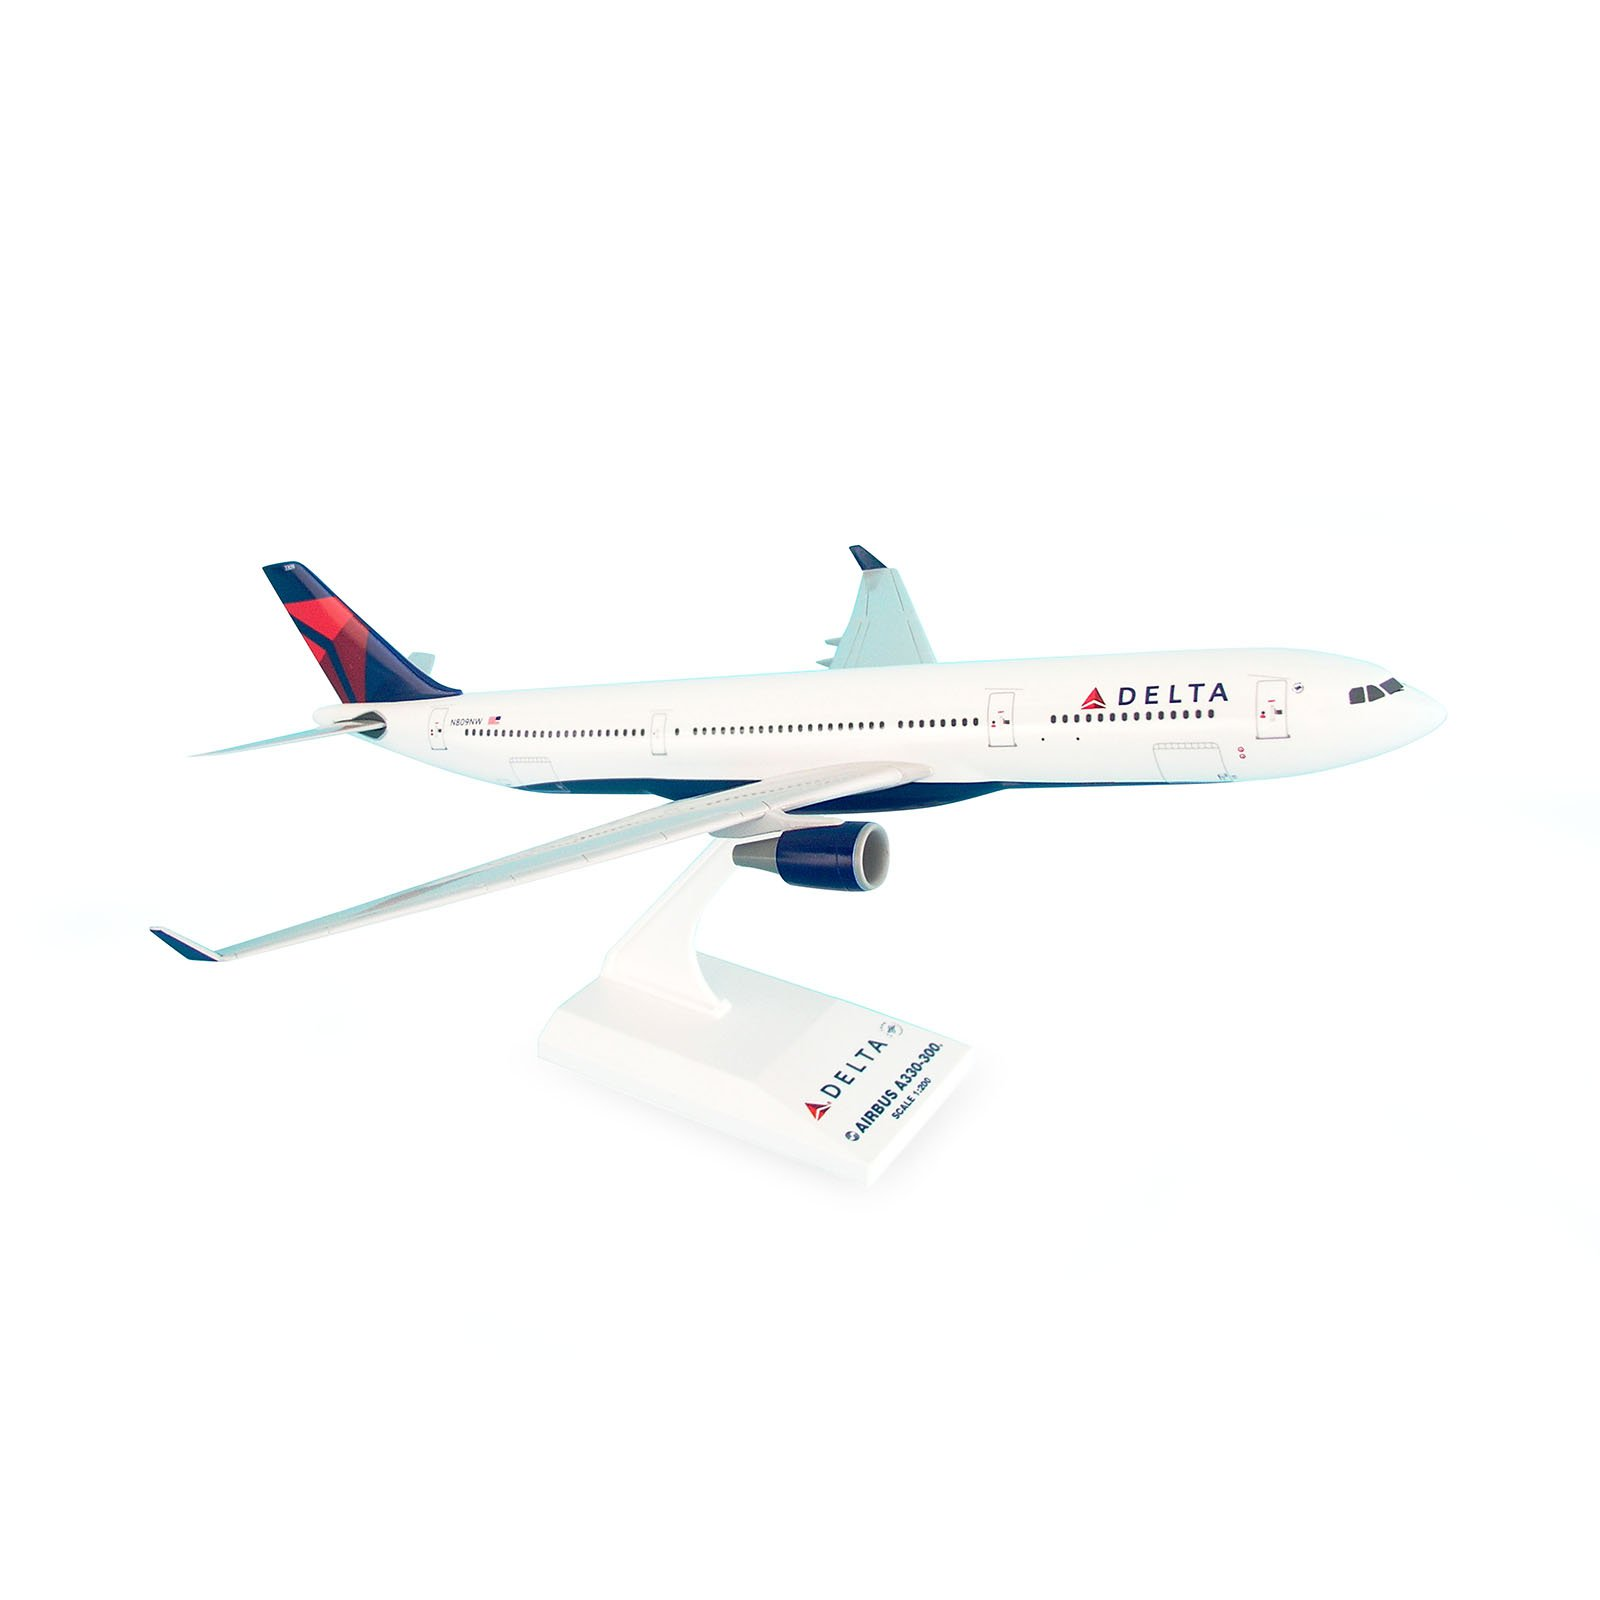 Skymarks Delta A330-300 New Livery Model Airplane by Skymarks